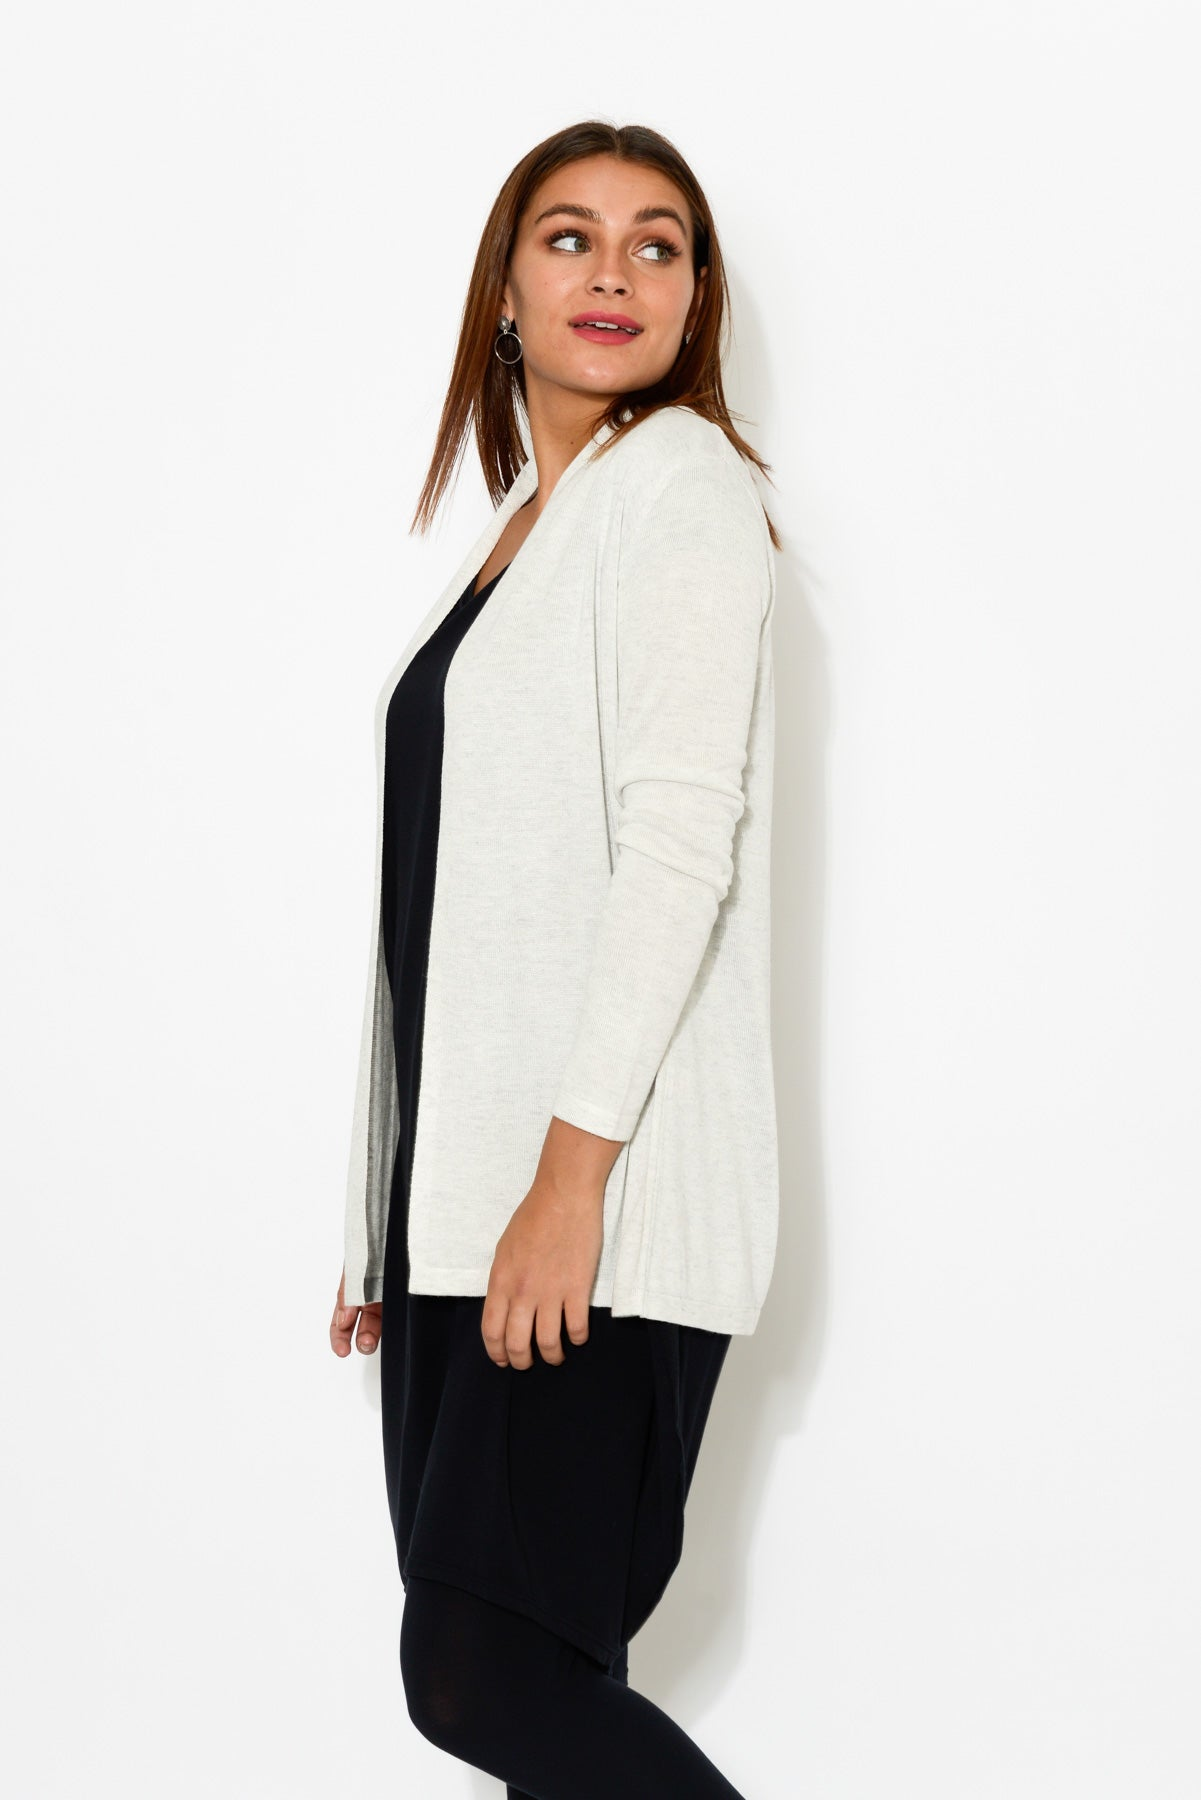 Grey Bamboo Wool Knit Cardigan - Blue Bungalow